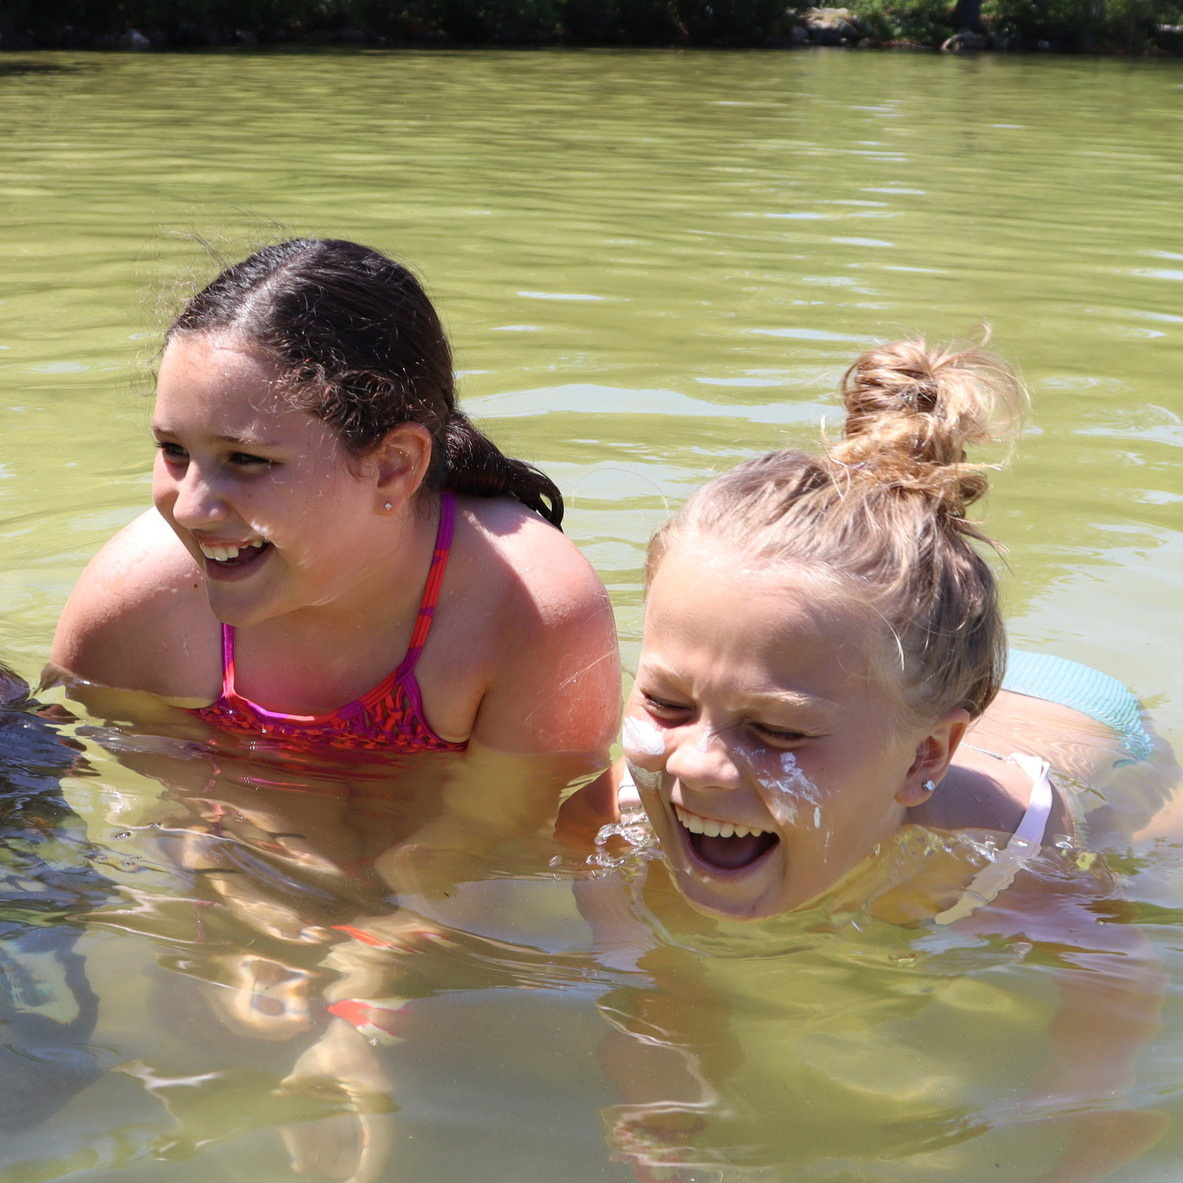 """""""I still remember the first time I went tubing at WEHGC last year, and I can still see Johanna, one of the counselors, screaming her head off. The counselors are so compassion, and it's great to see them act like kids, just like us."""""""